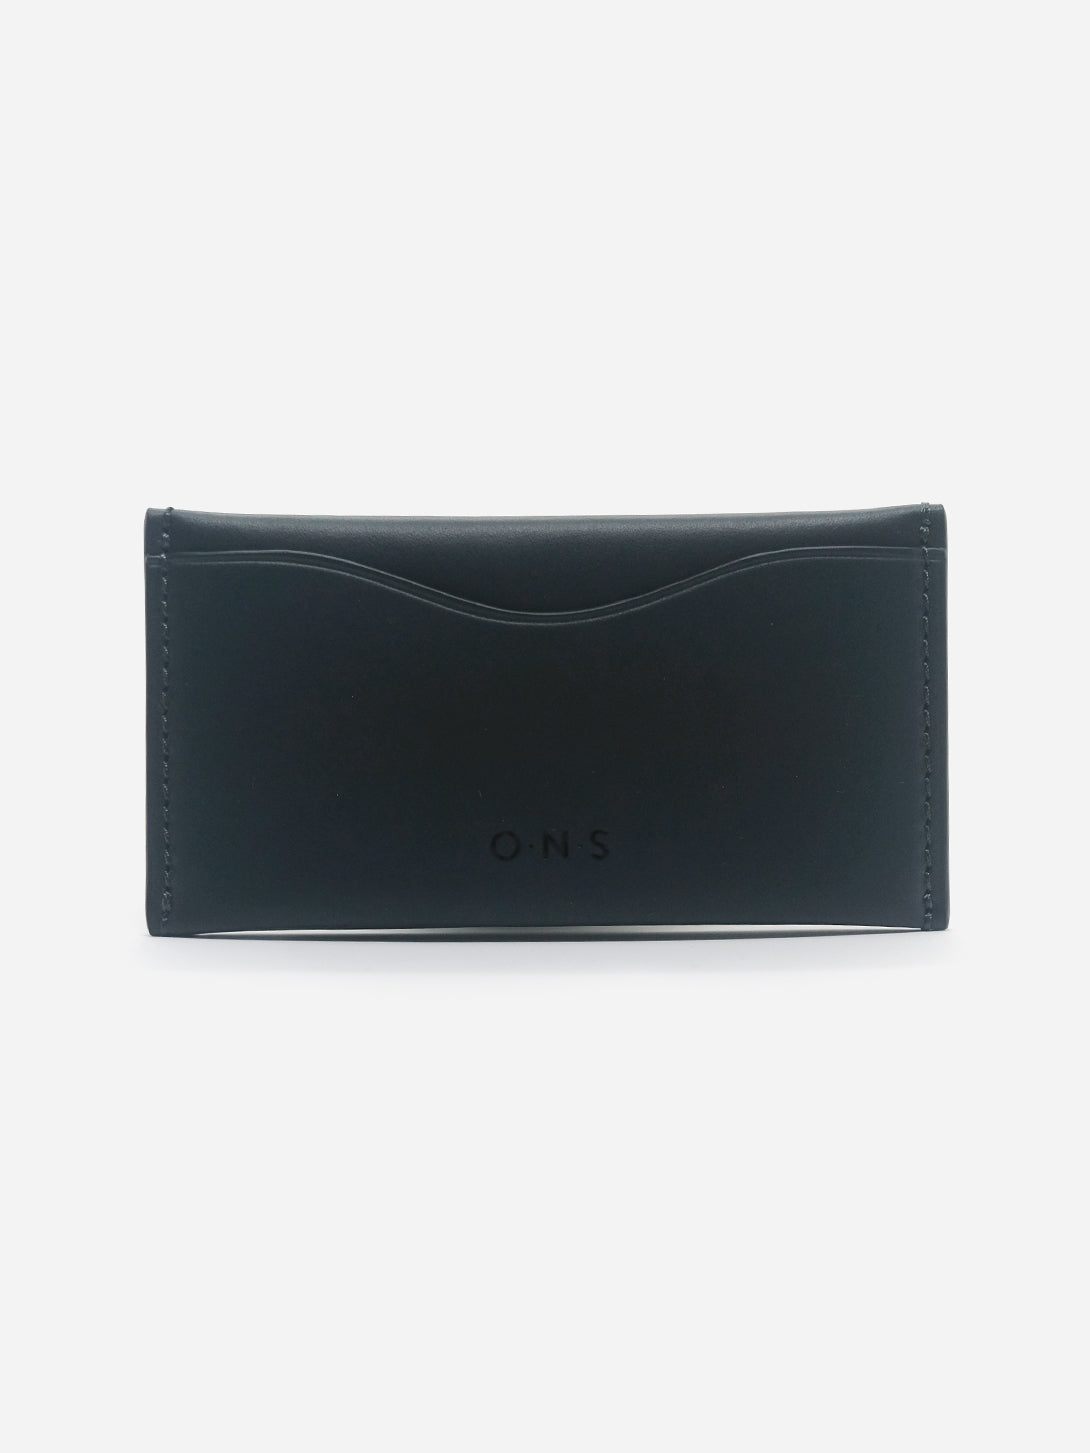 NAVY 3 SLOTS CARDHOLDER ONS WALLETS